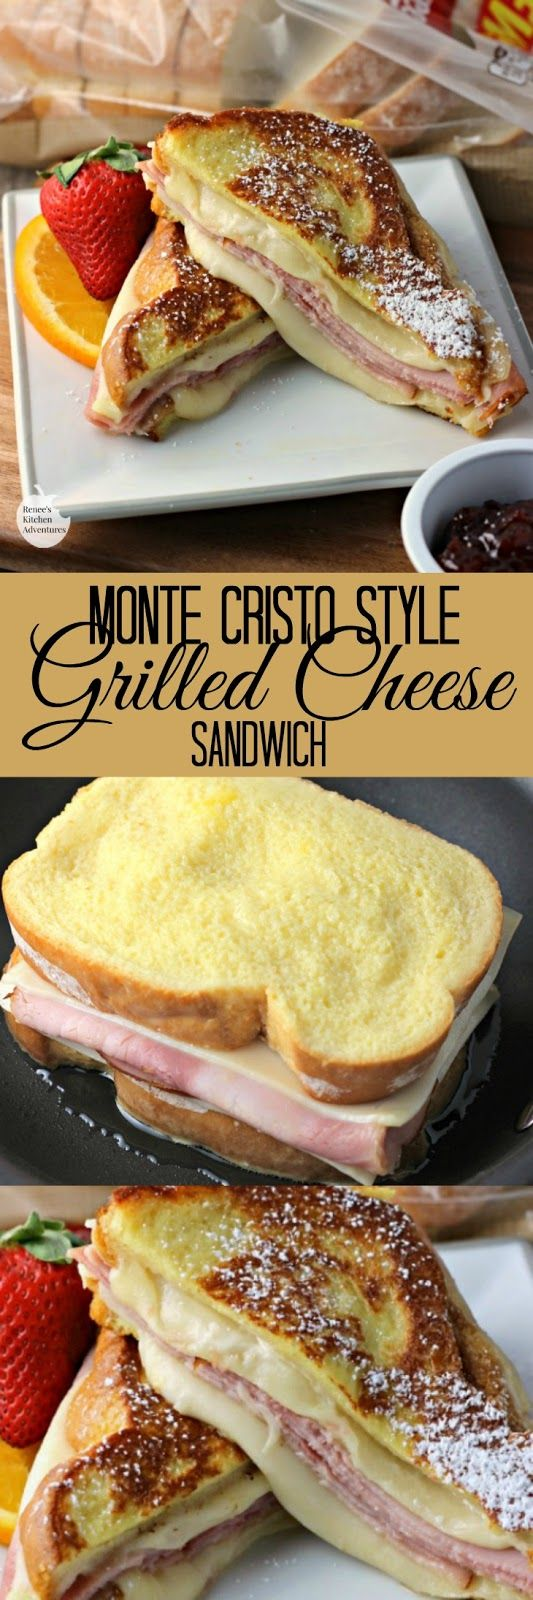 Cristo Style Grilled Cheese Sandwich